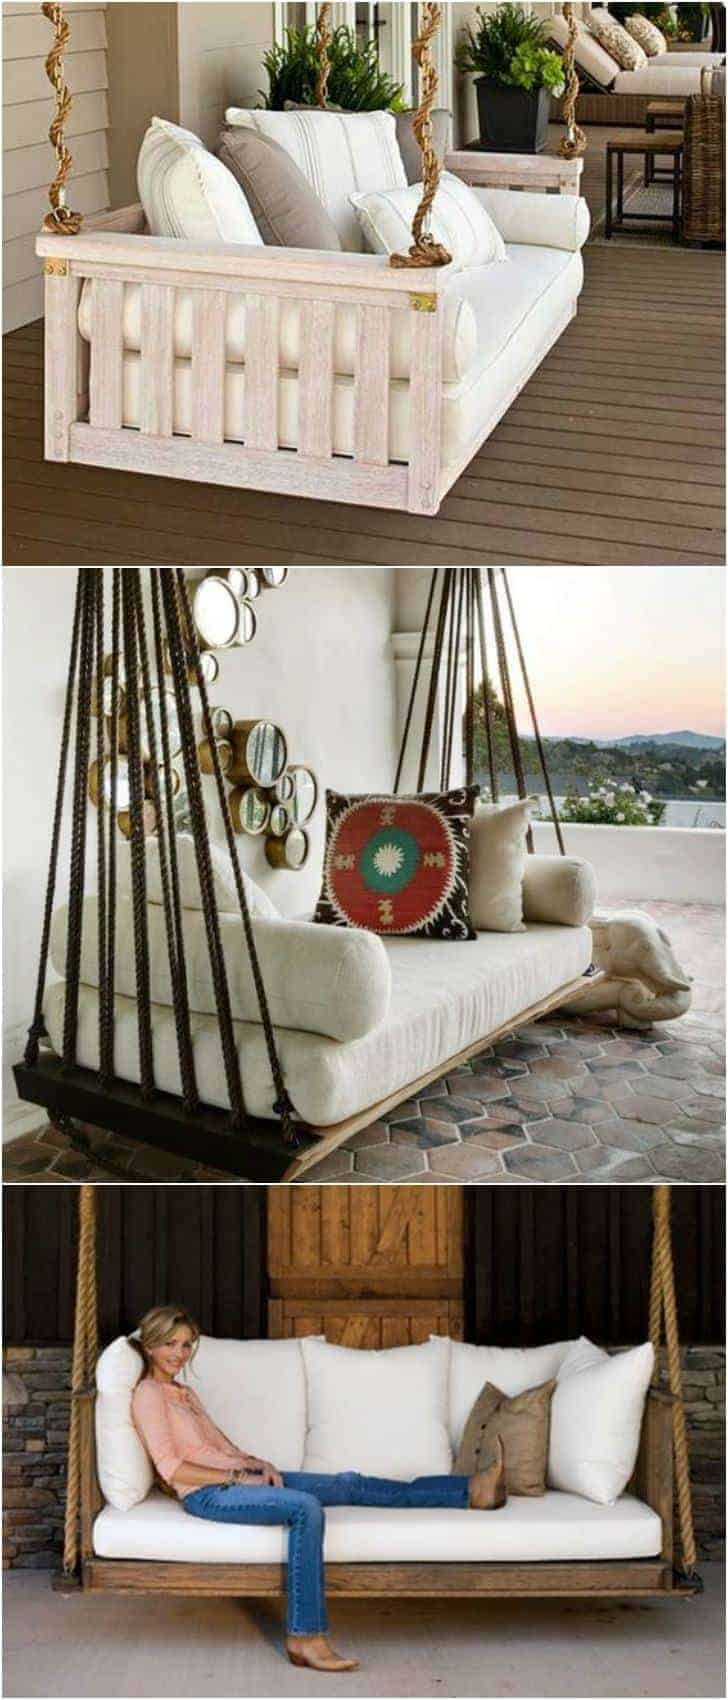 7 DIY Outdoor Swings That'll Make Warm Nights Even Better ...